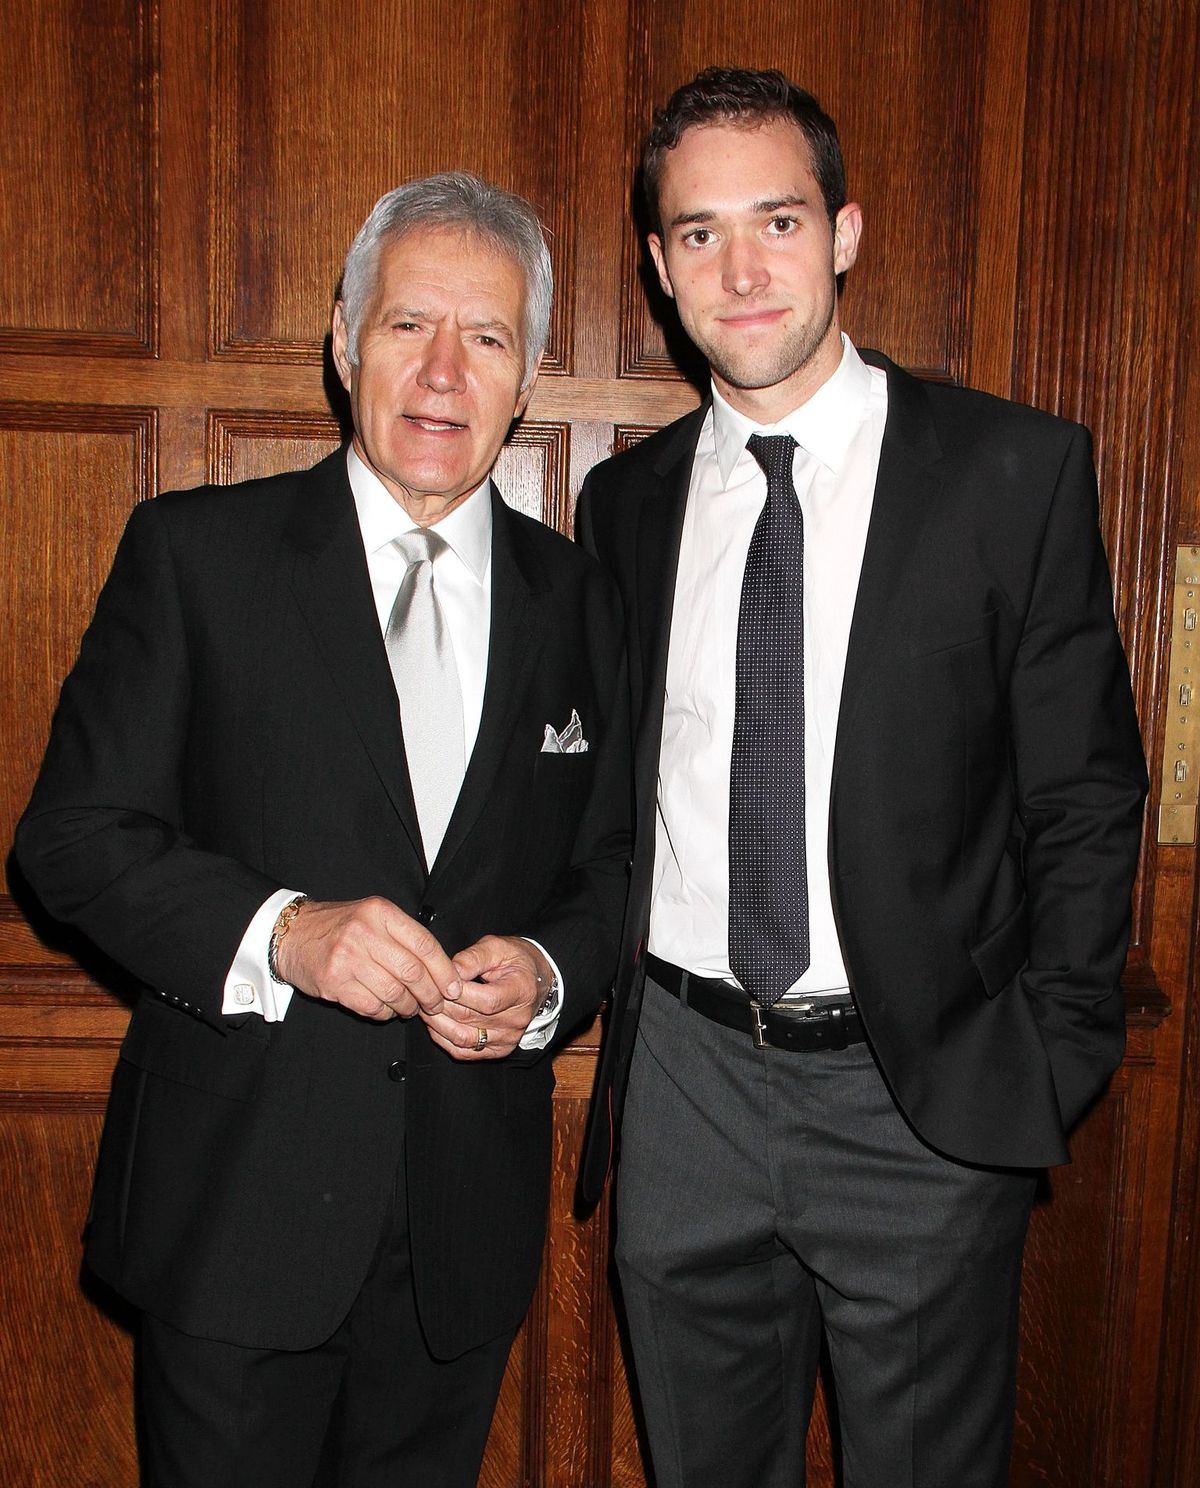 Alex and Matthew Trebek atthe 11th annual Giants of Broadcasting Honorson October 16, 2013, in New York City   Photo:Laura Cavanaugh/FilmMagic/Getty Images